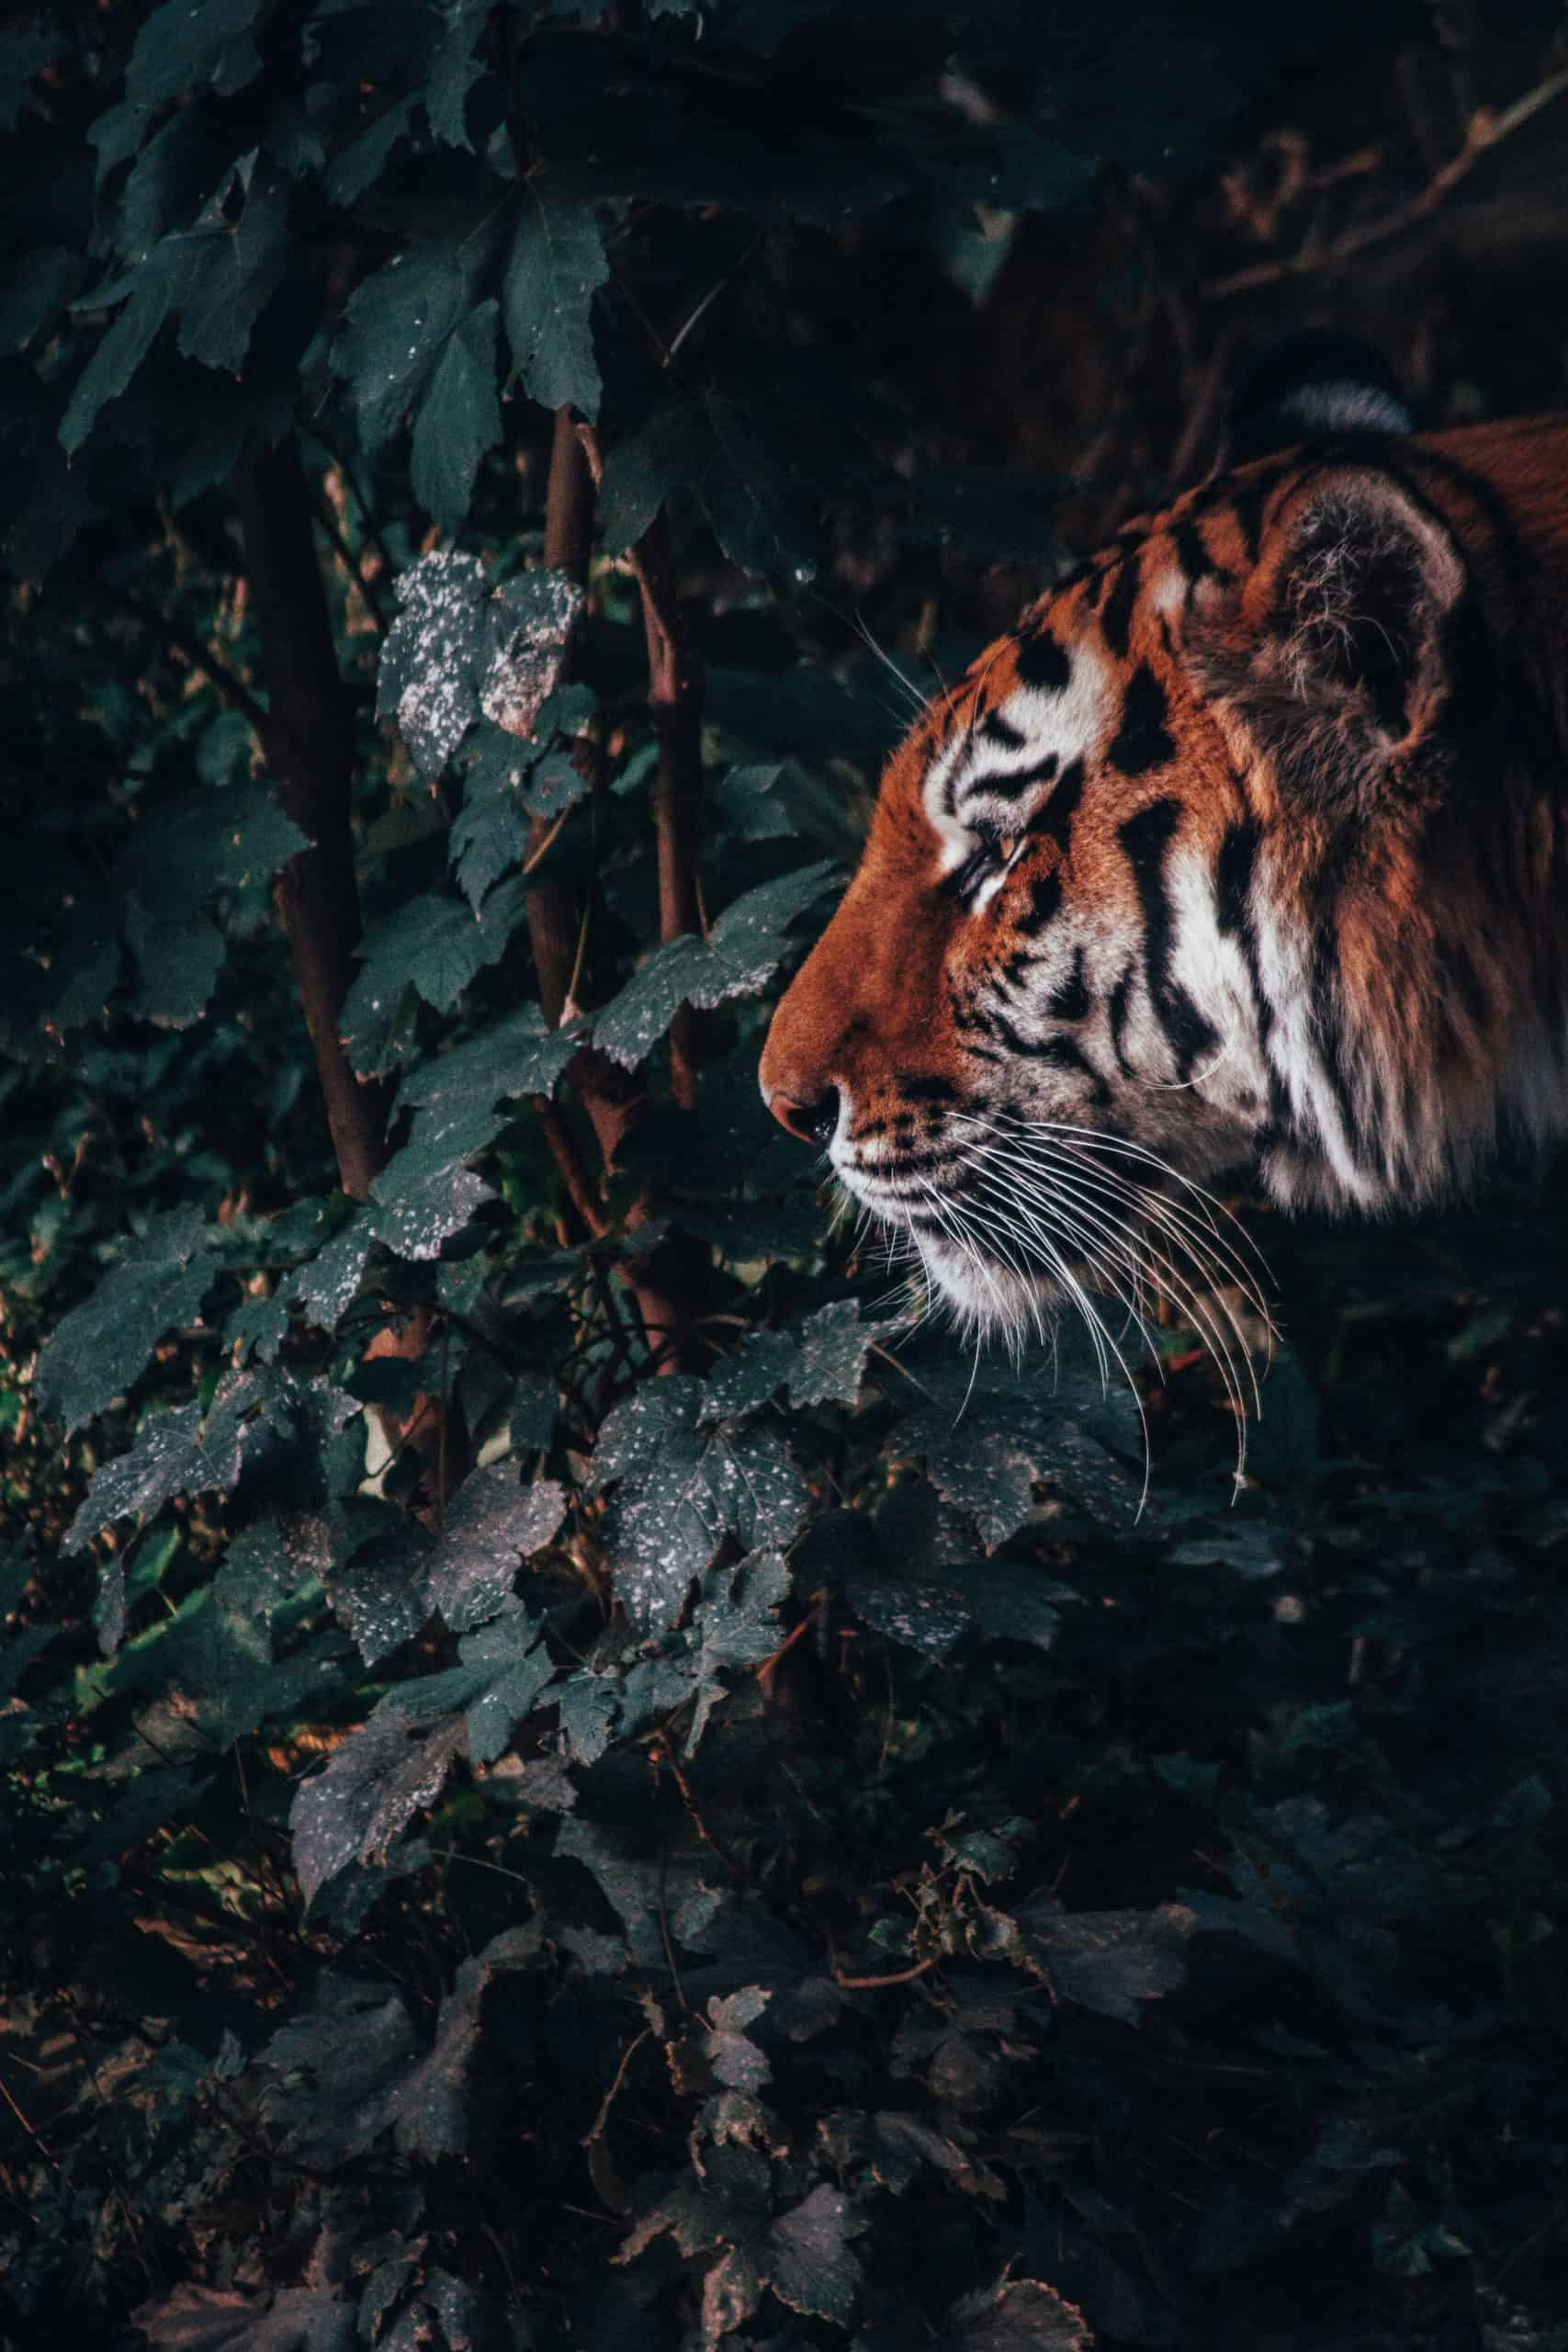 A Complete Guide To Take A Tiger Photo With Its Cub